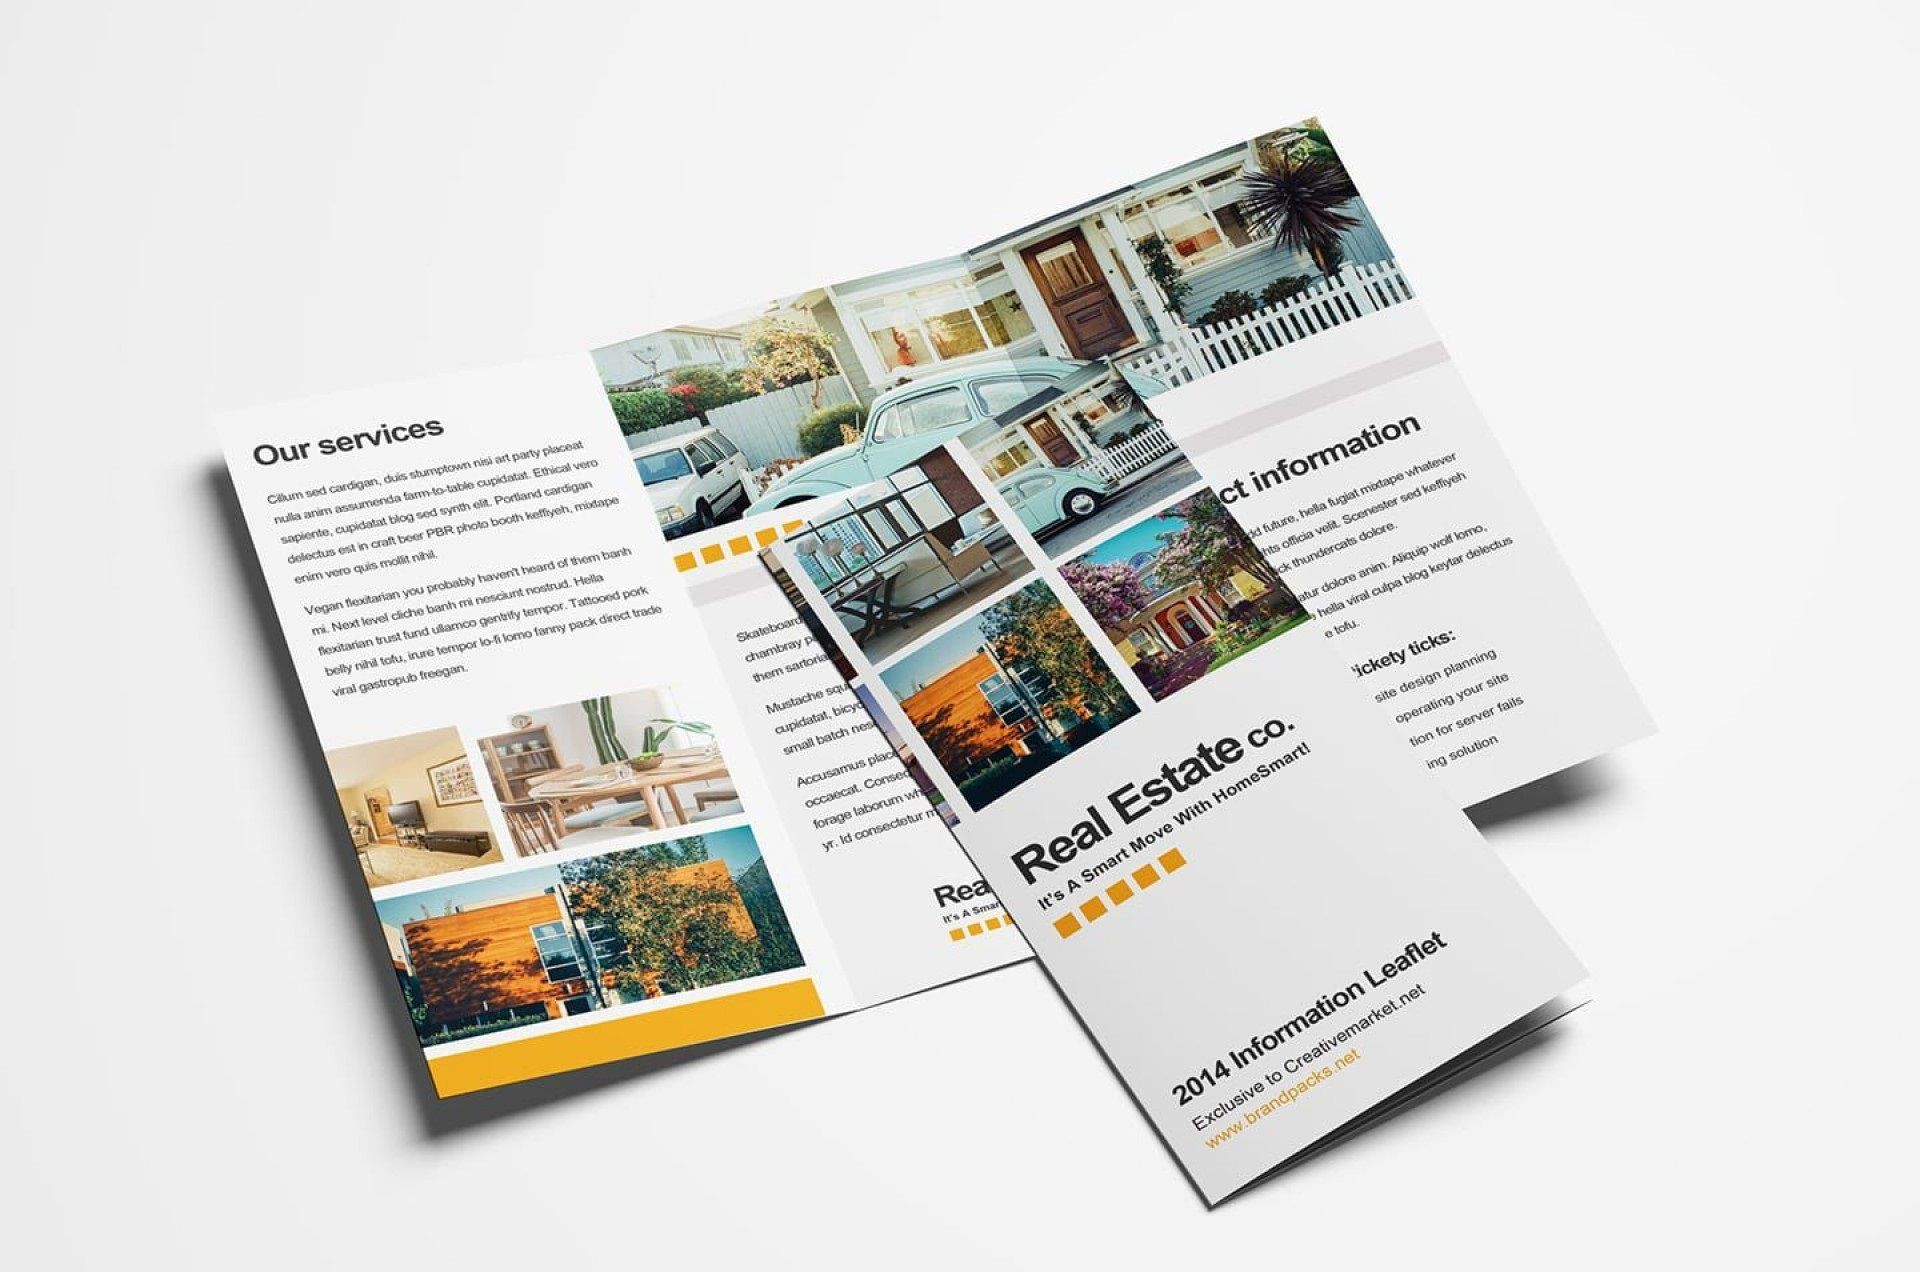 008 Awful Brochure Template Photoshop Cs6 Free Download Sample Full